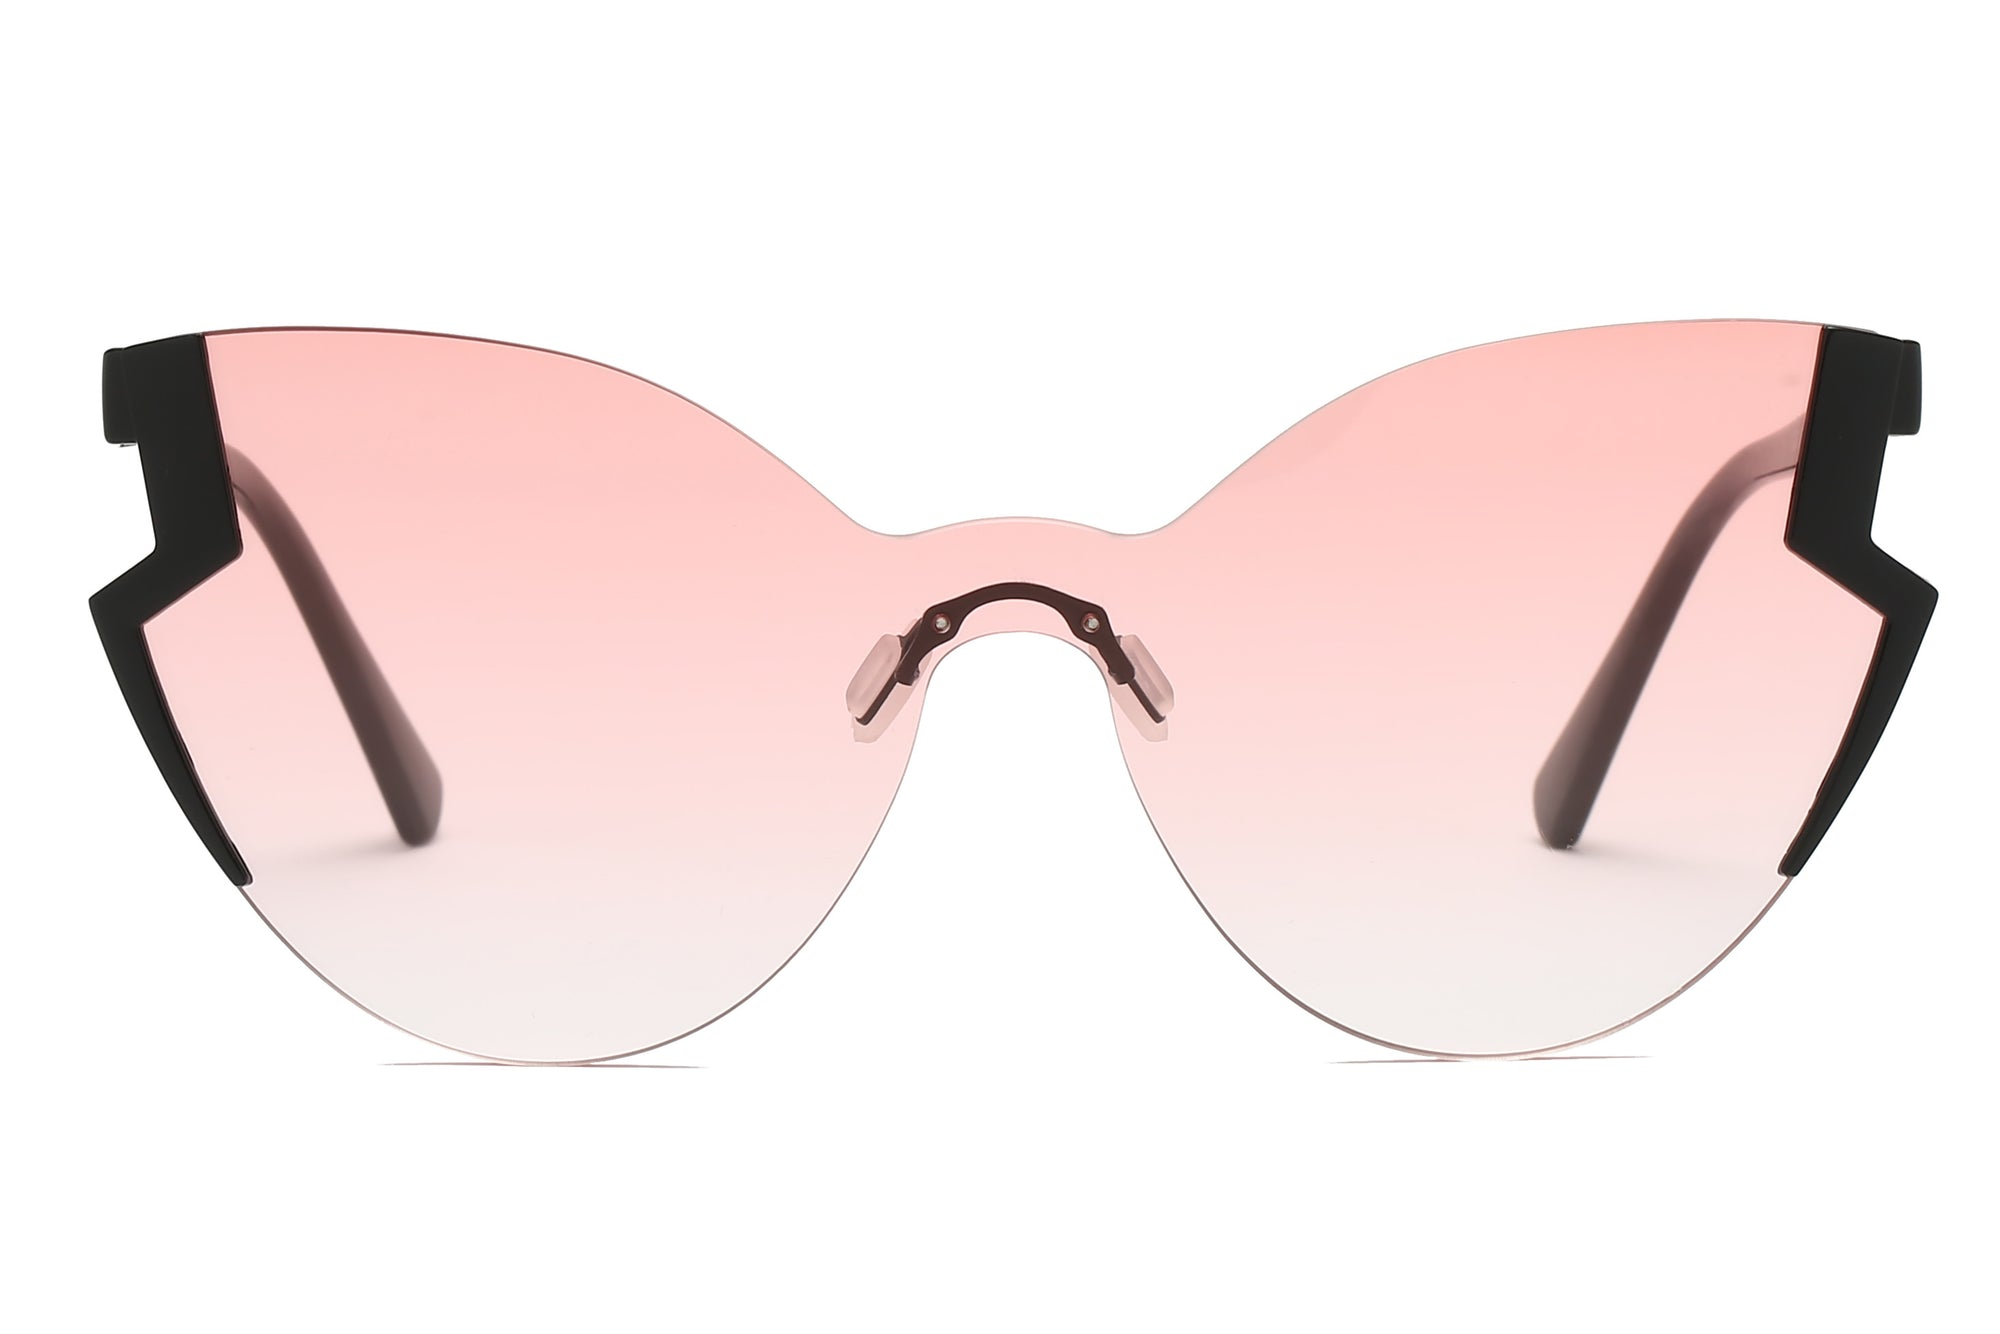 S2074 - Women Fashion Oversize Cat Eye Sunglasses - Iris Fashion Inc. | Wholesale Sunglasses and Glasses